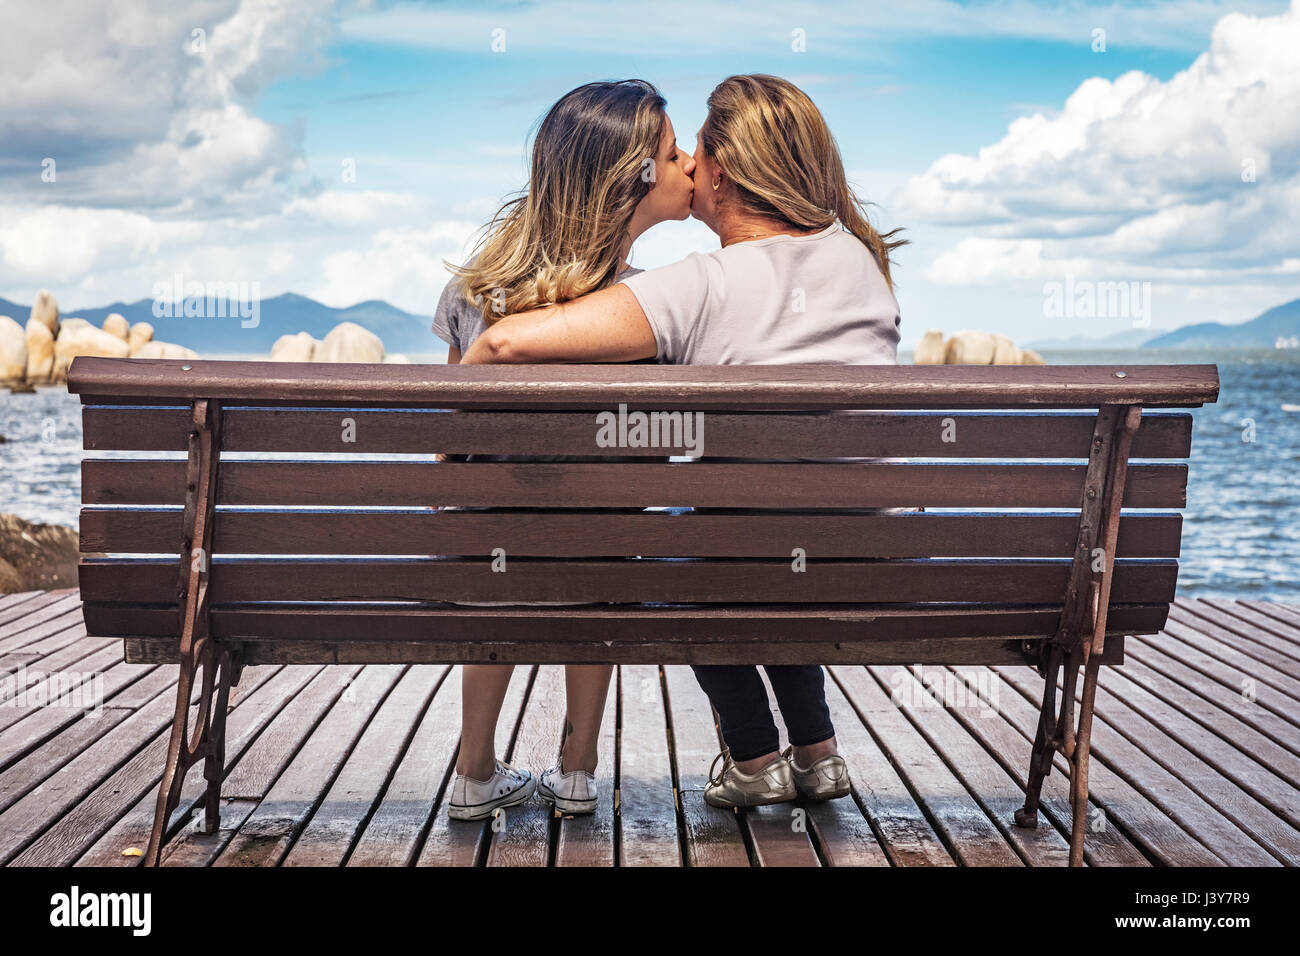 Rear view of mother and daughter on park bench kissing - Stock Image